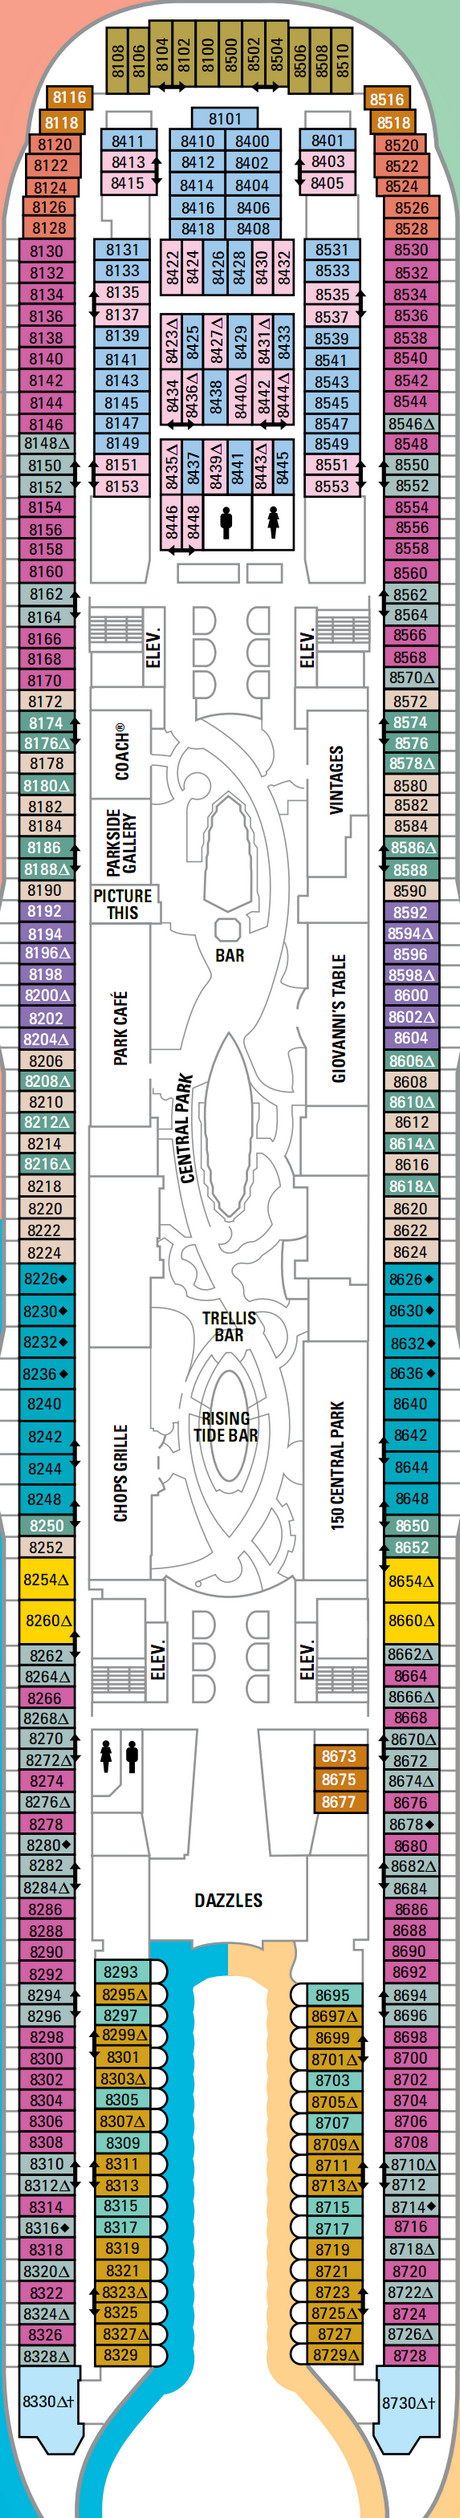 Oasis Of The Seas Deck 8 layout